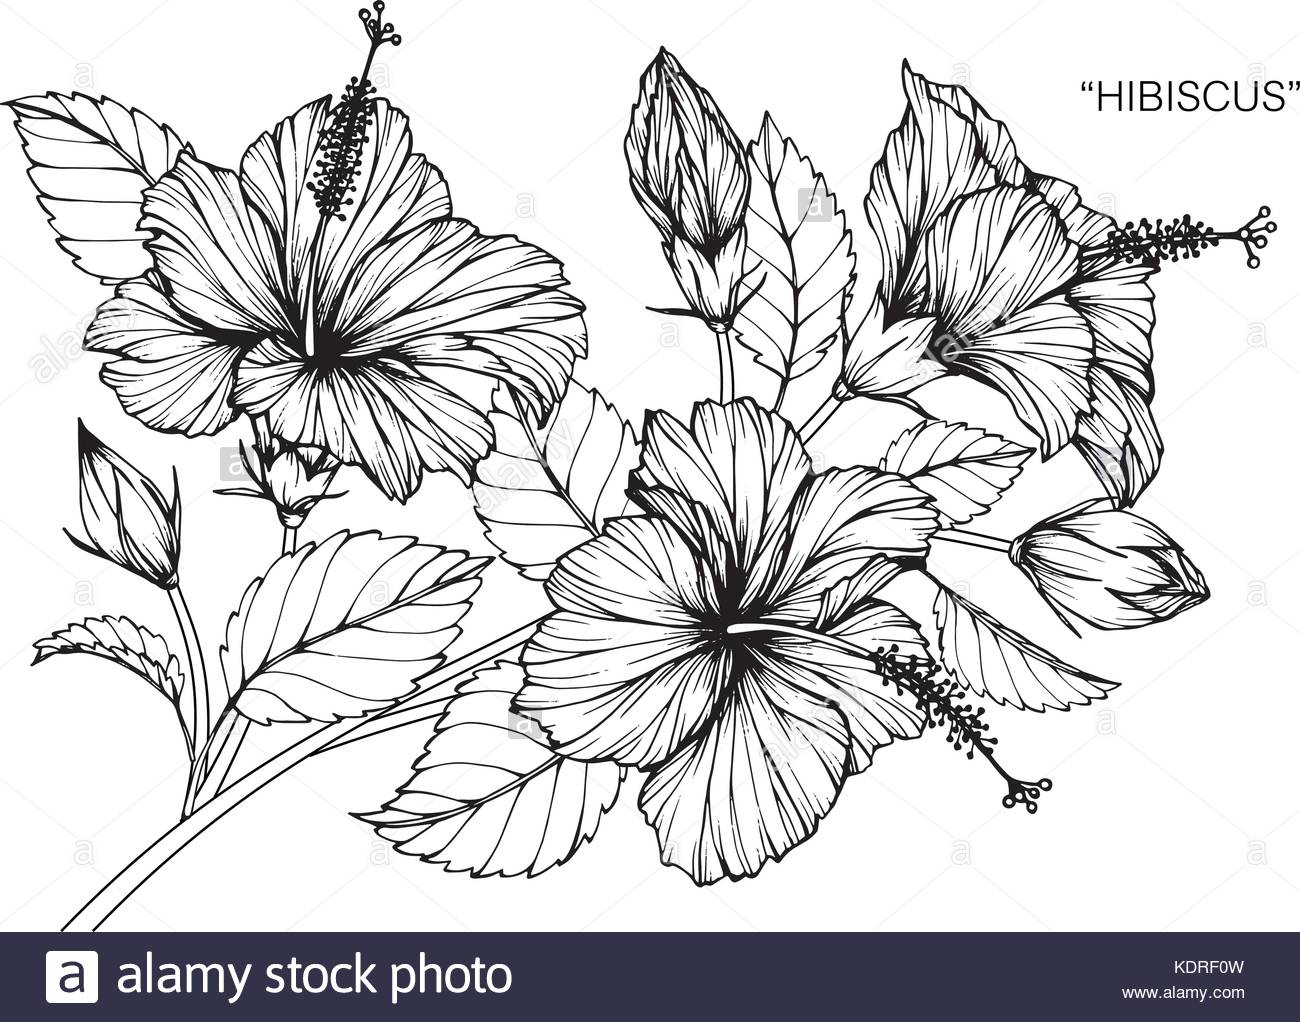 Hibiscus flowers drawing at getdrawings free for personal use 1300x1022 hibiscus flower drawing cut out stock images amp pictures izmirmasajfo Choice Image